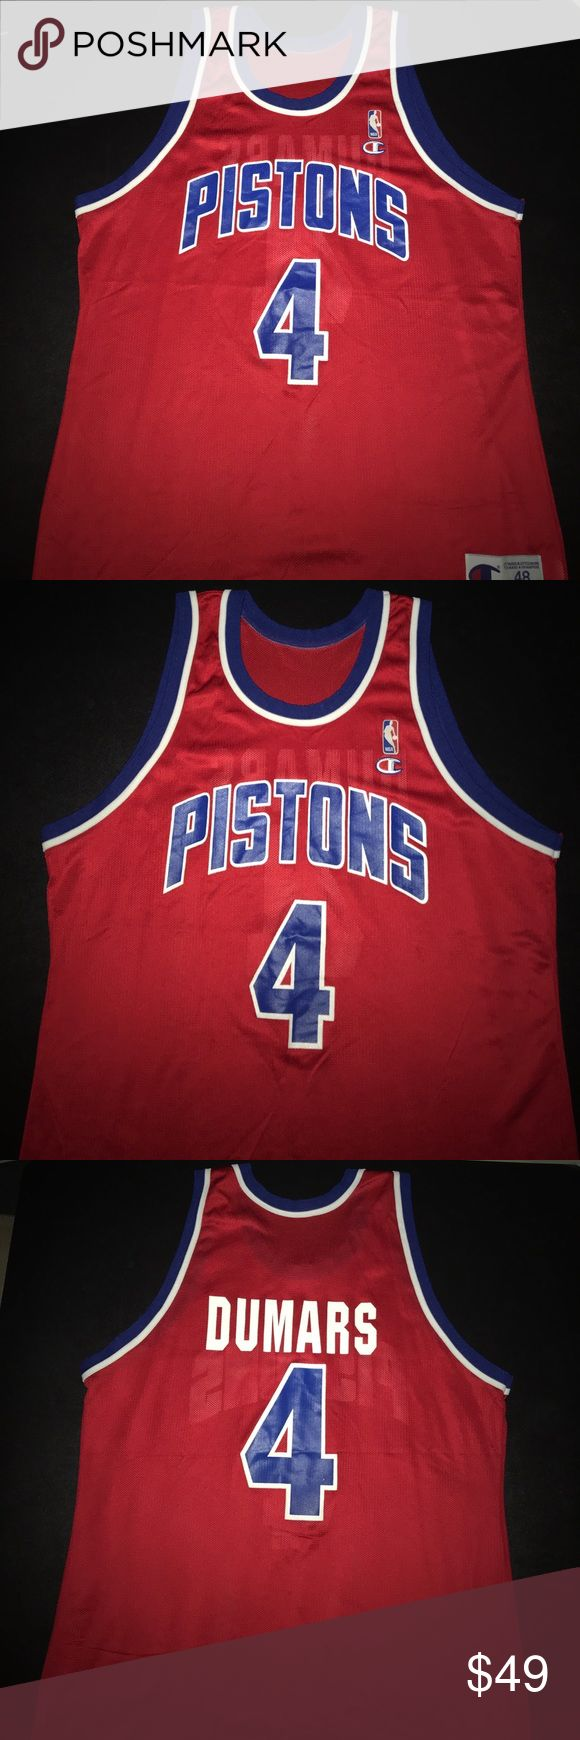 684ed8c06 ... stitched 6c2ae 57229; promo code for throwback jersey mens nba detroit  pistons joe dumars vtg champion jersey 114bf f4b84